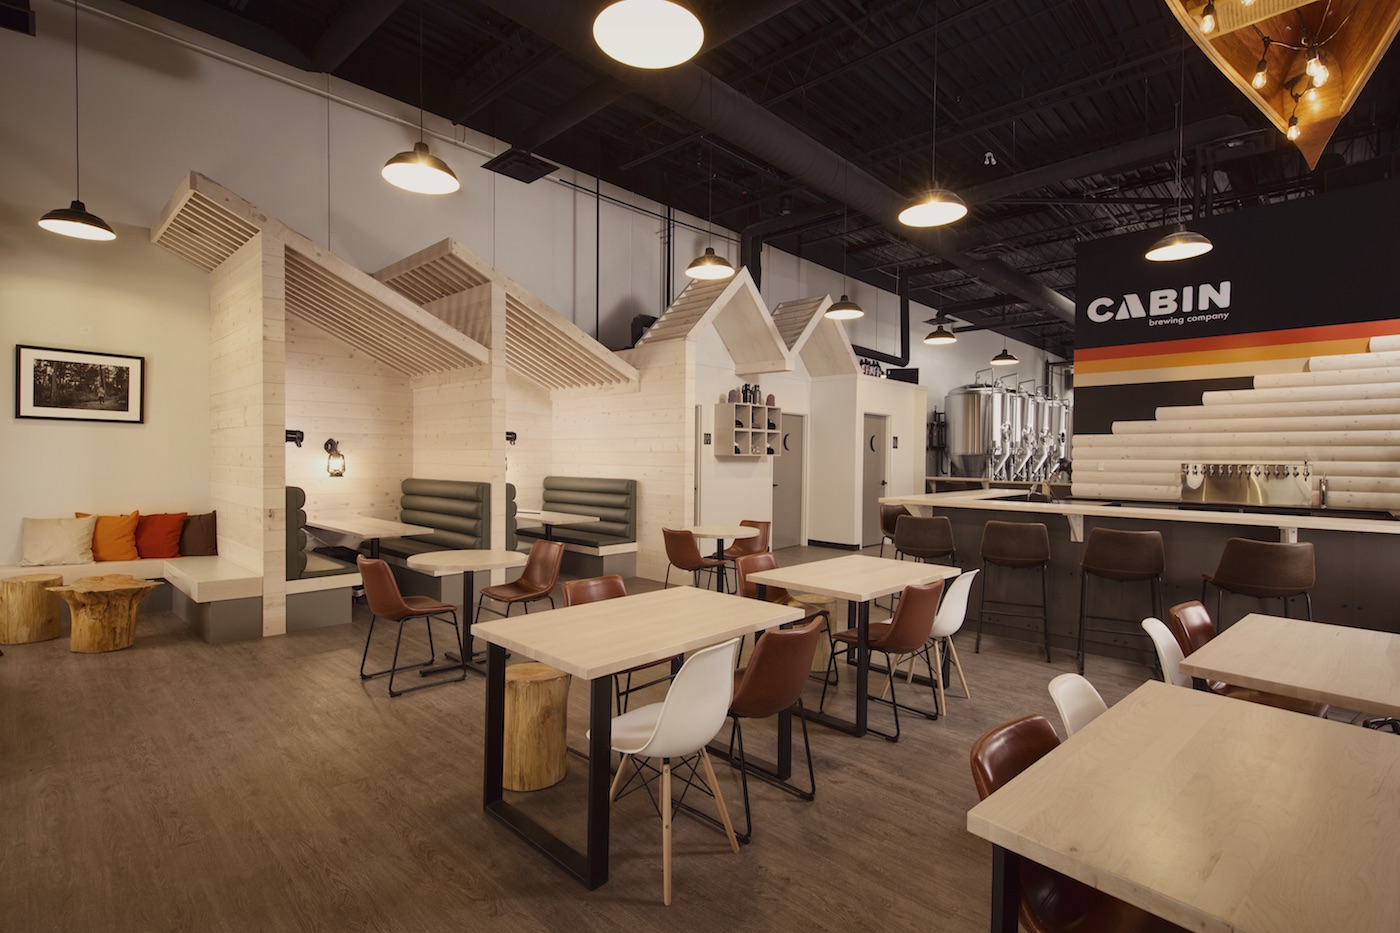 Cabin-Brewing-Company-Taproom-1-